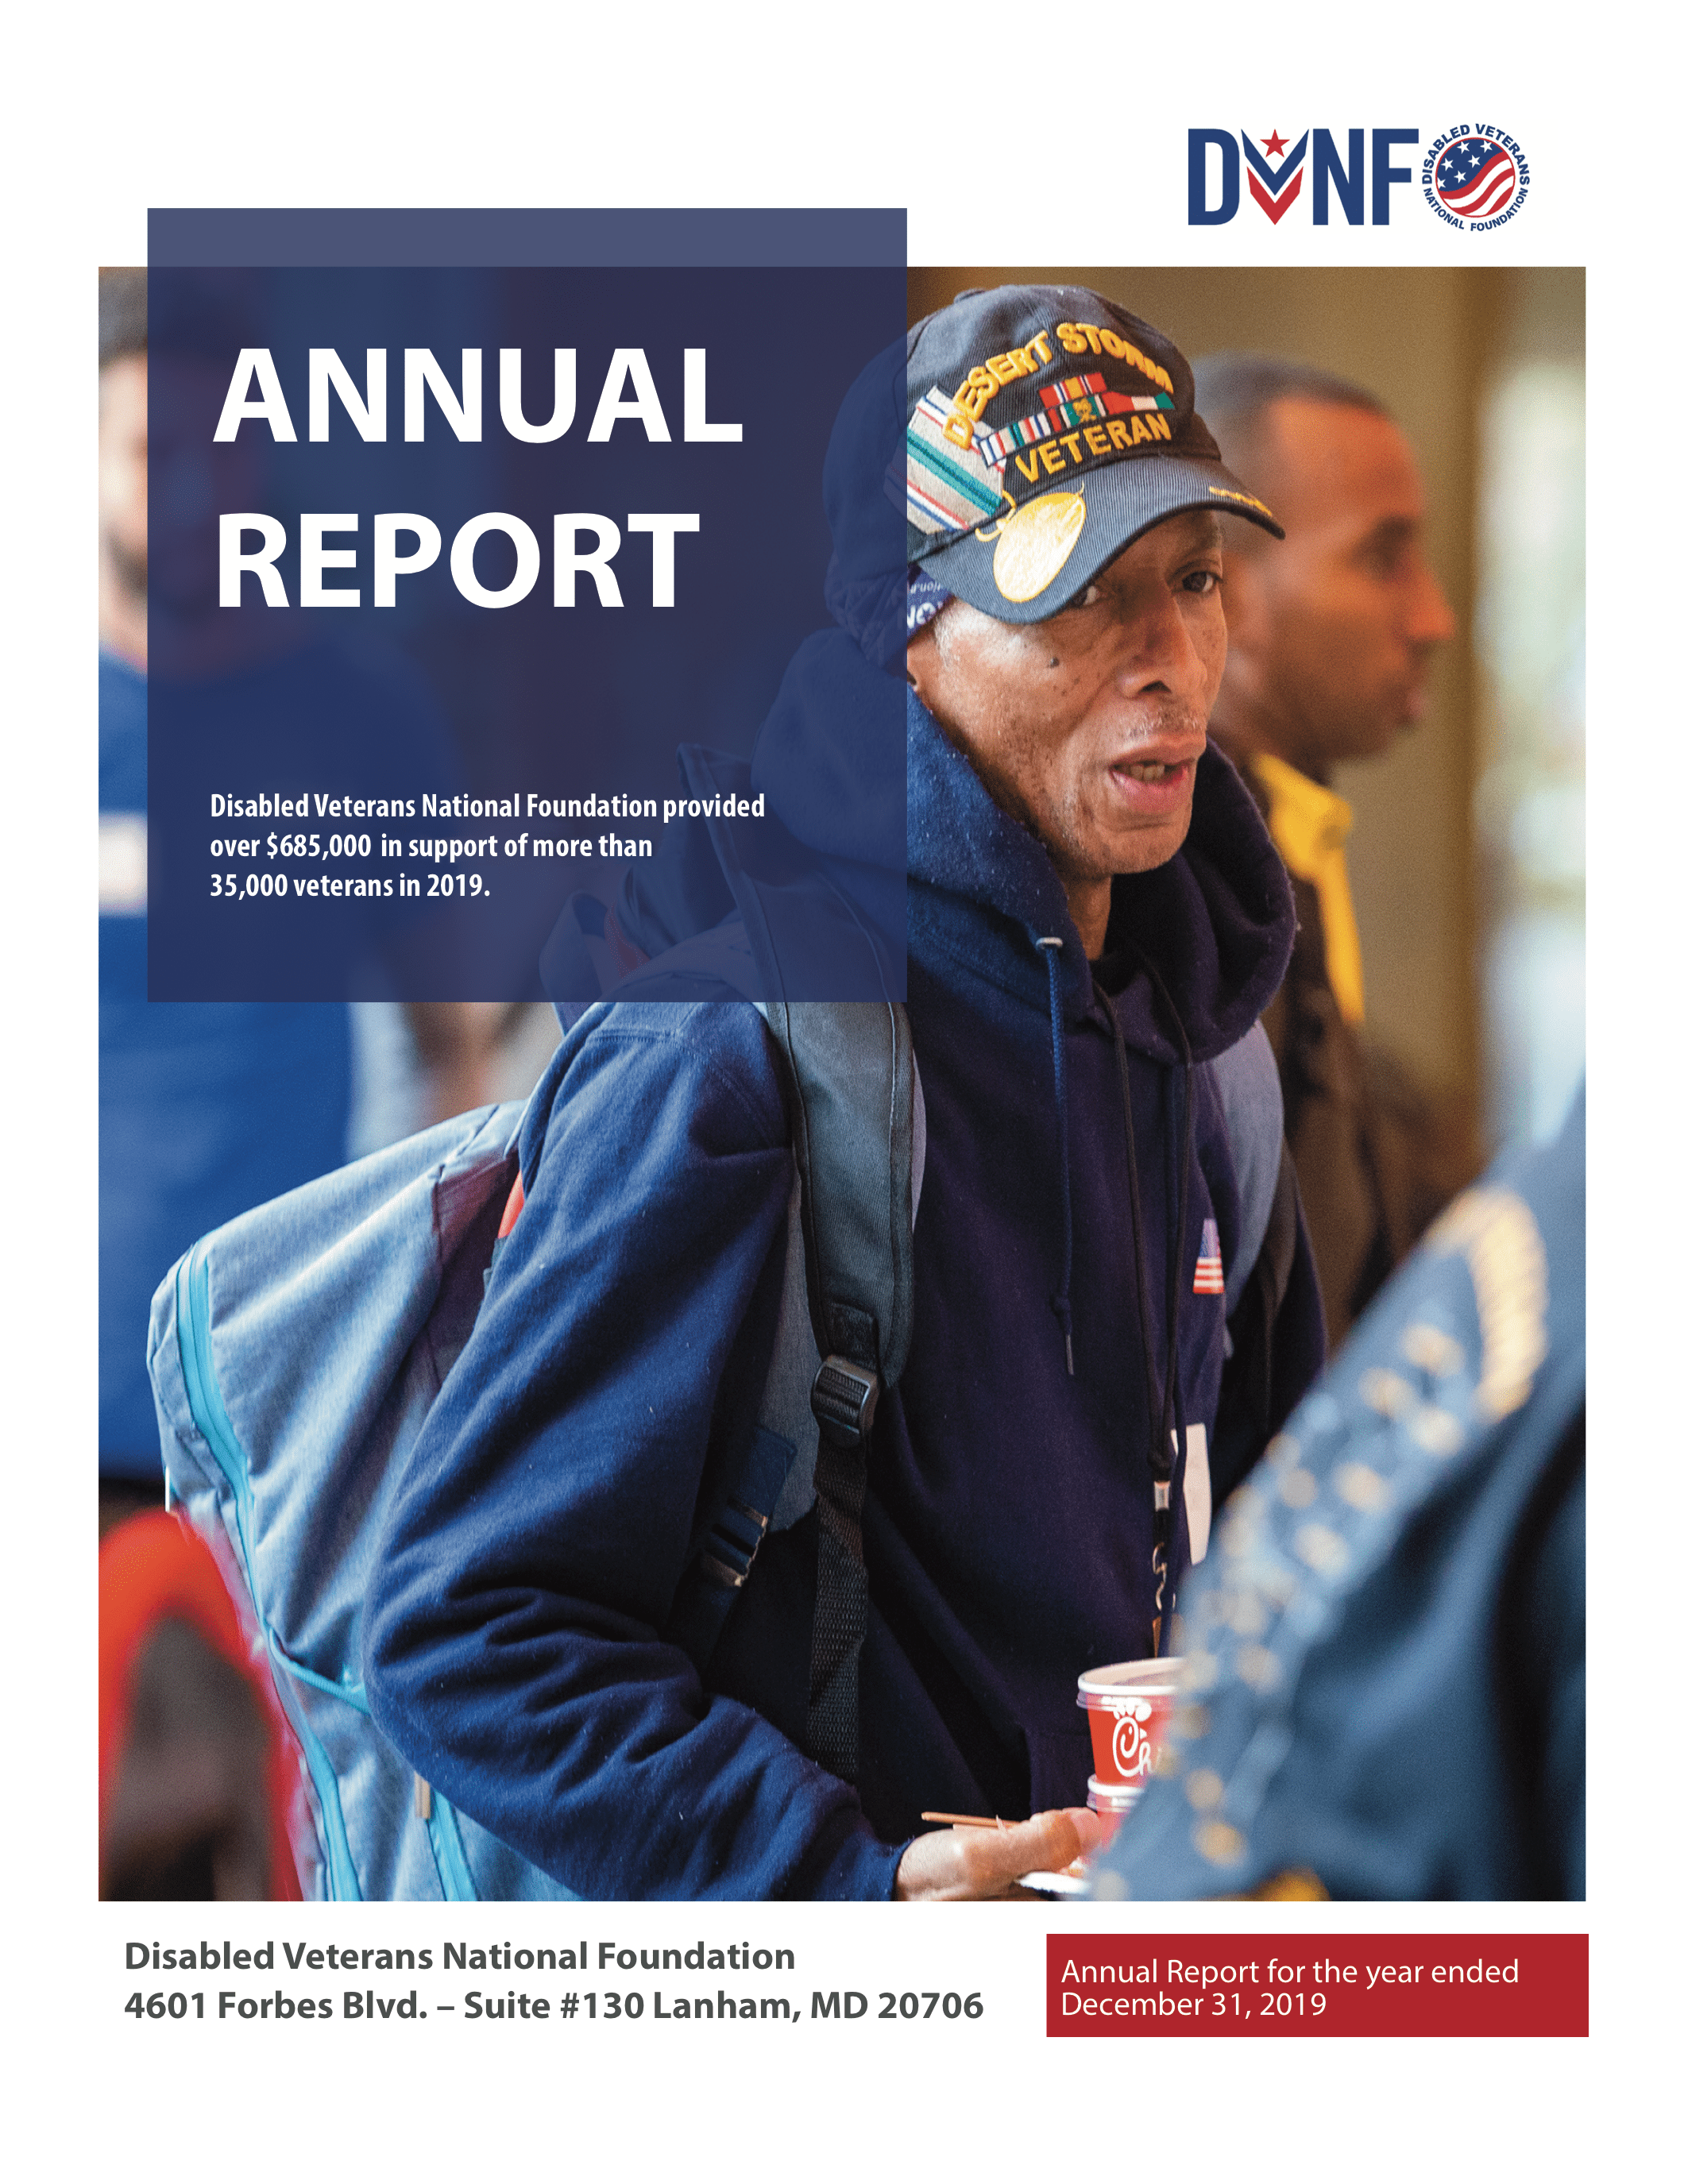 DVNF_Annual_Report_2019 page 1 11 (1)